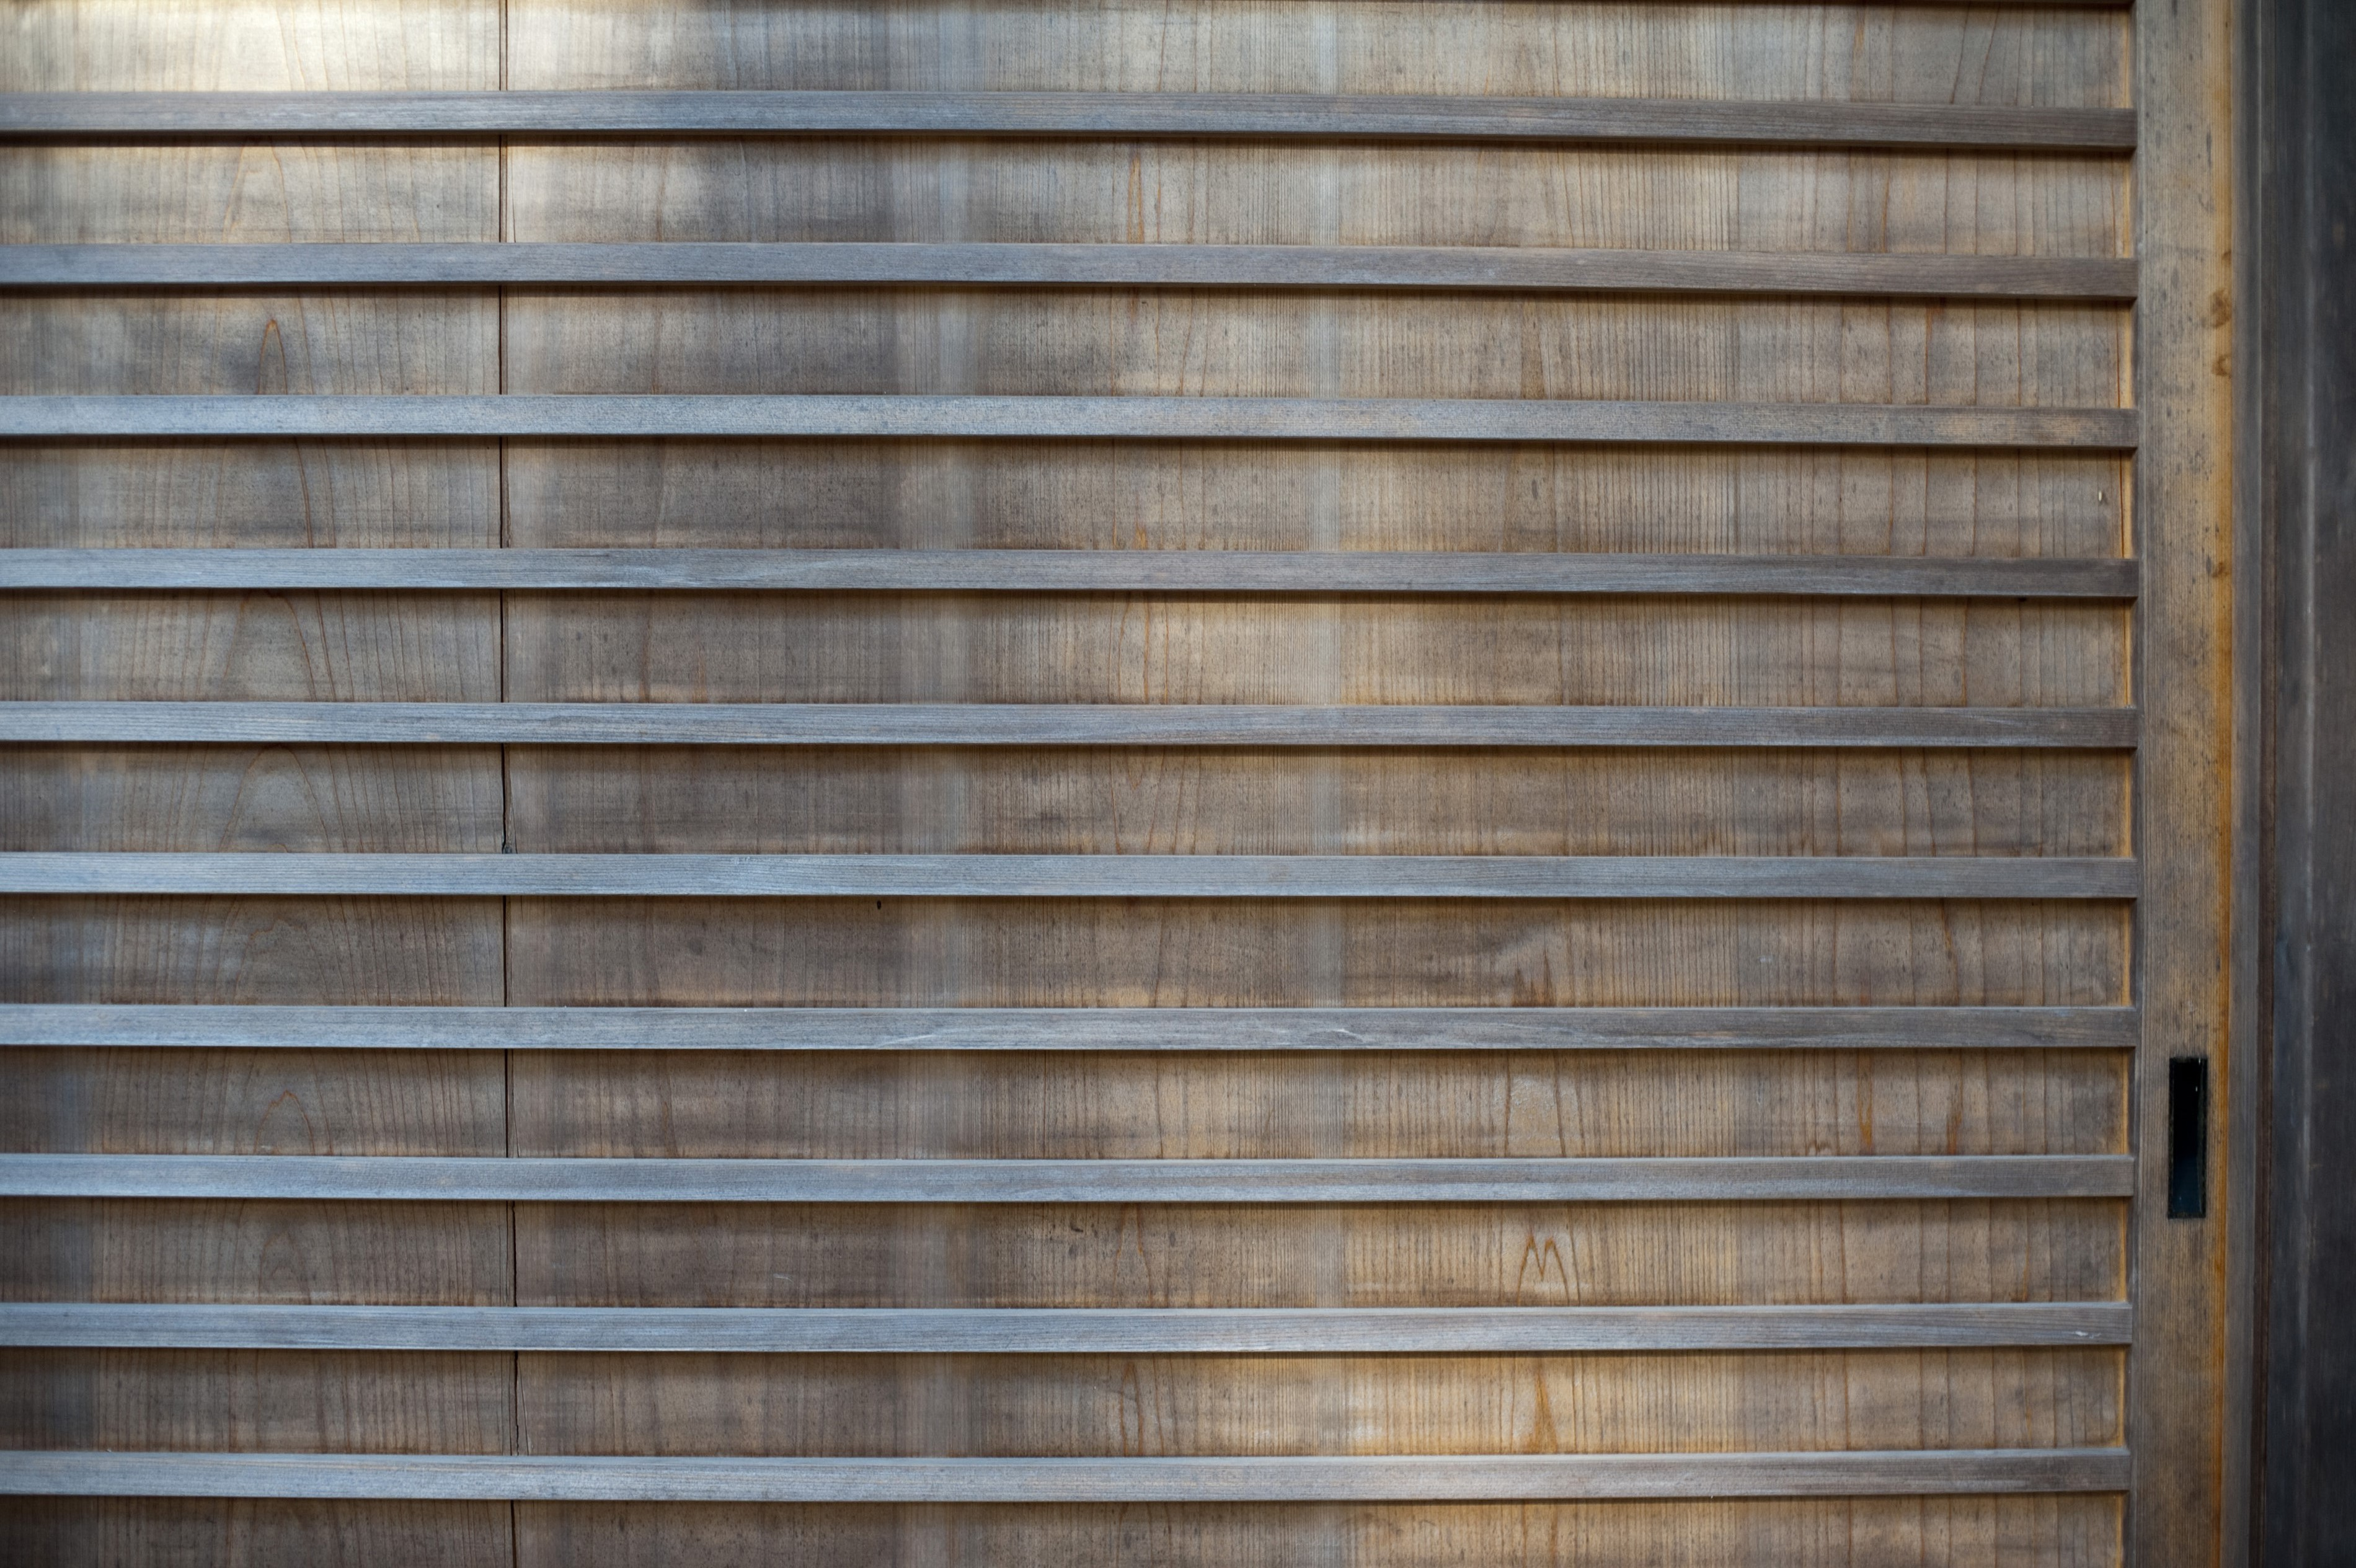 Background texture and pattern of thin parallel wood strips on an old wooden  panel